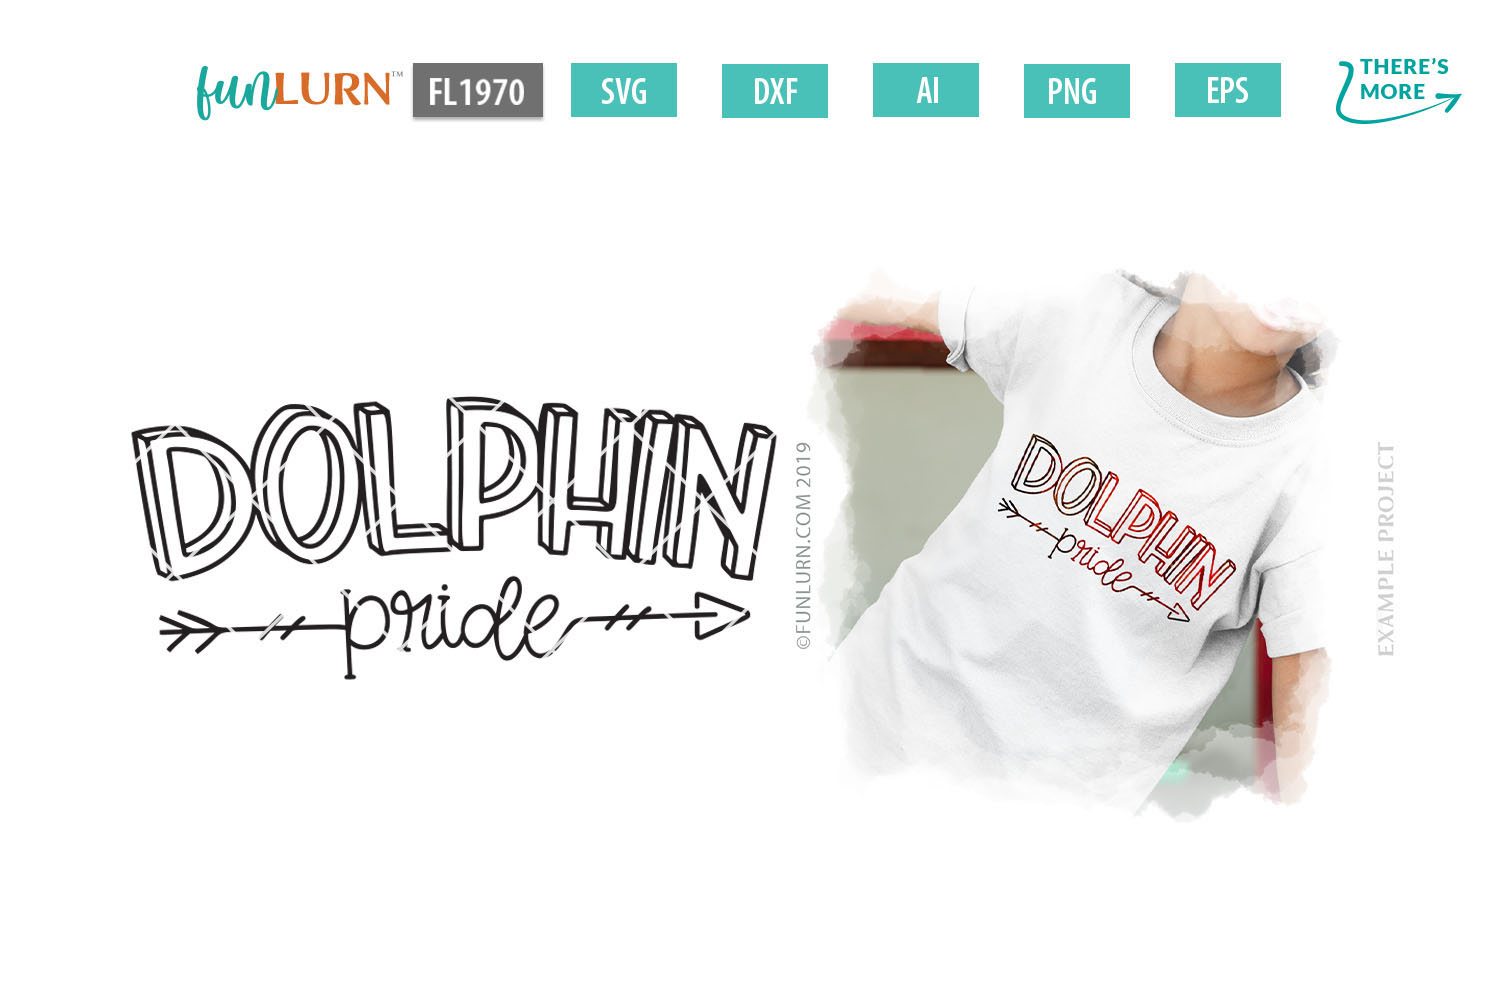 Dolphin Pride Team SVG Cut File example image 1